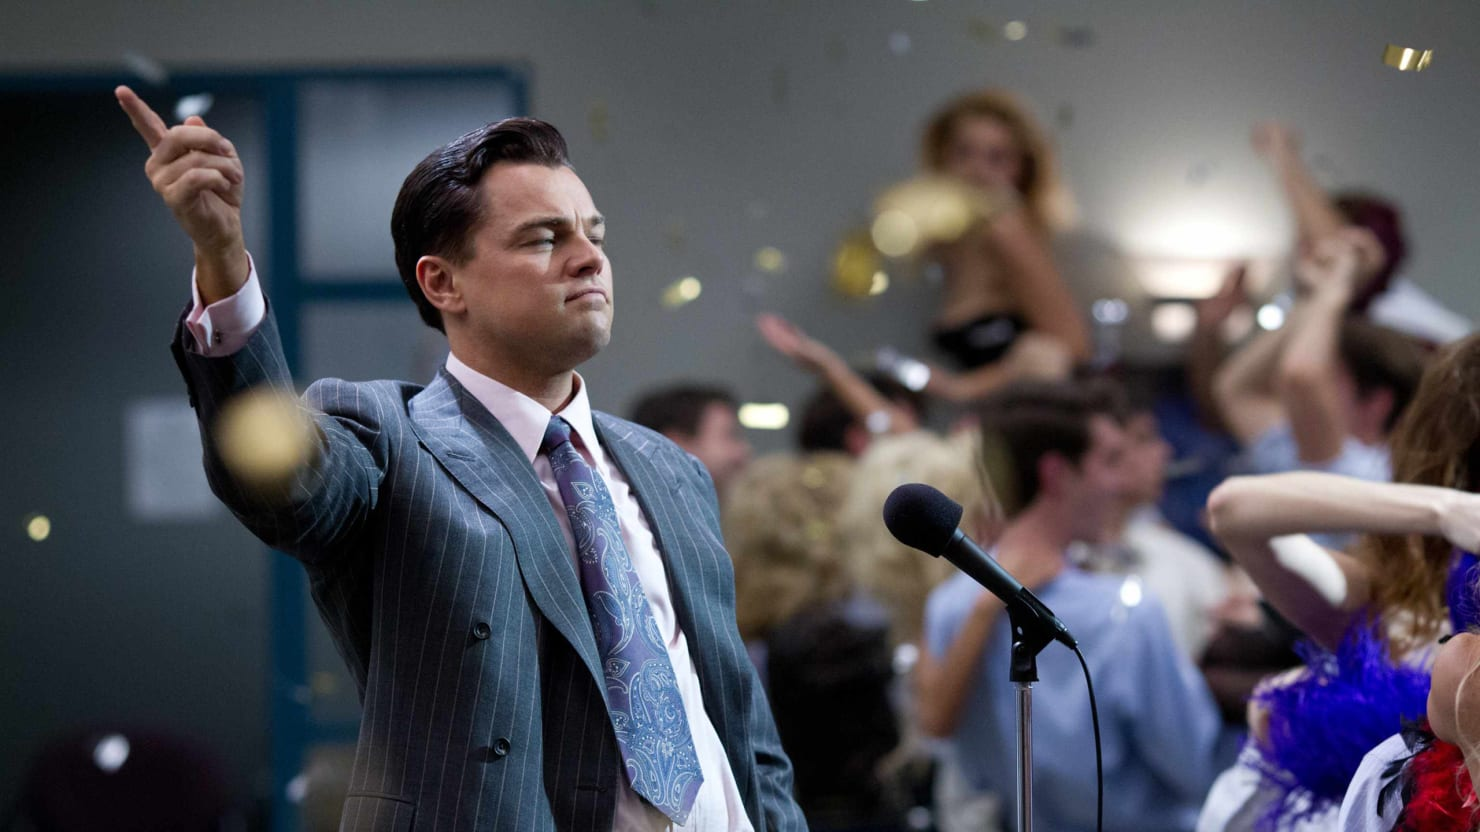 Finally! 'The Wolf of Wall Street' Is Hollywood's First 1990s Period Piece